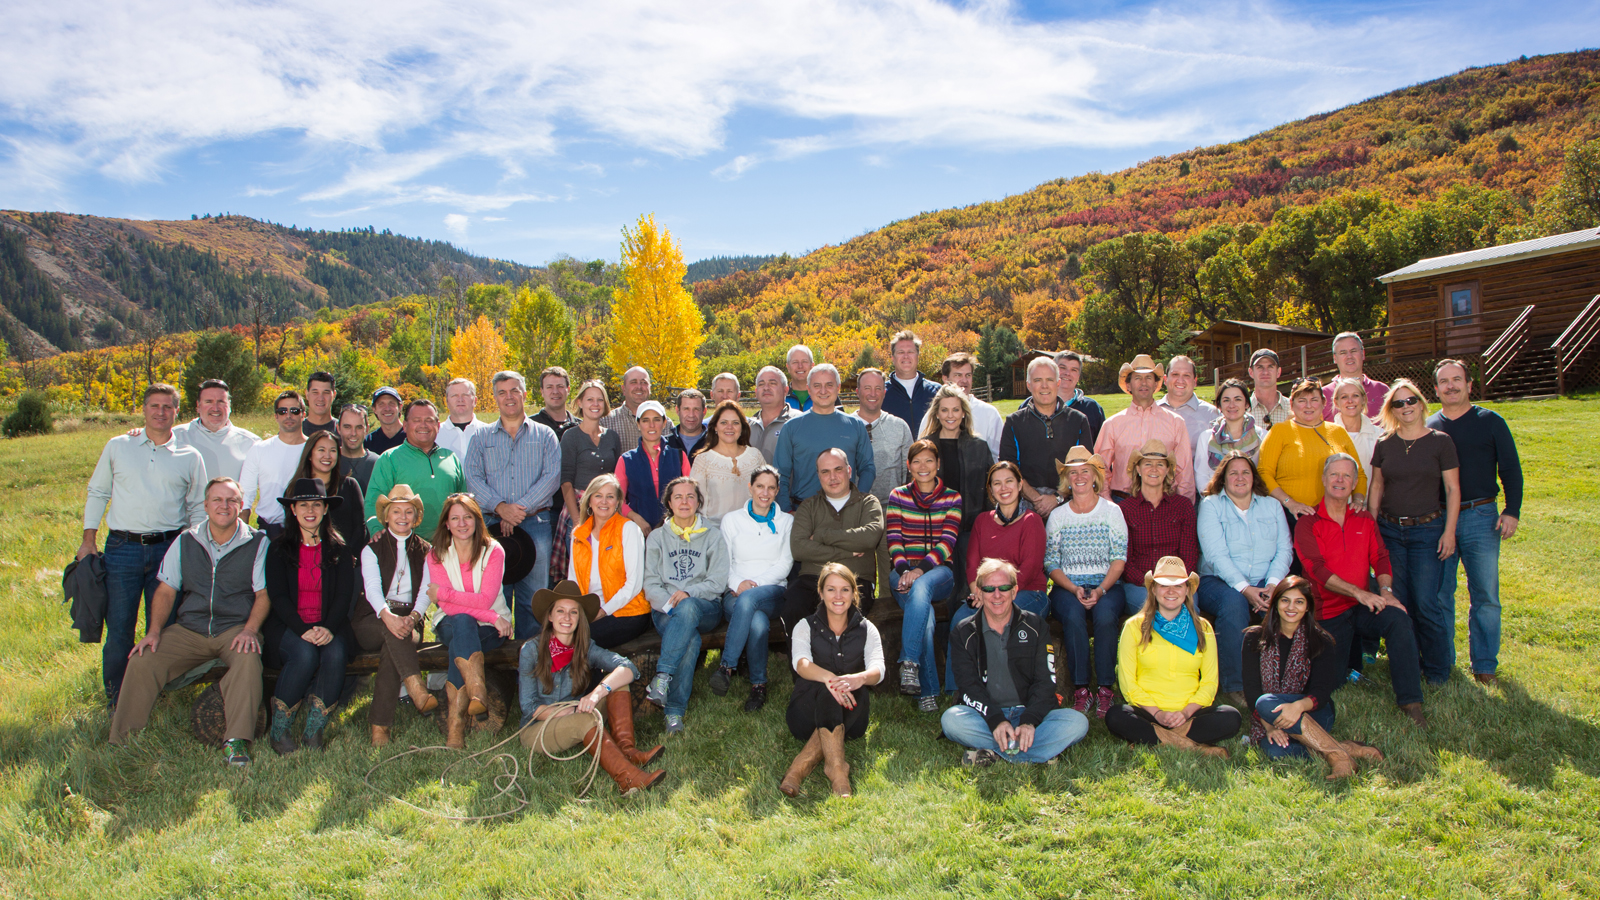 Vail Corporate Event Photographer